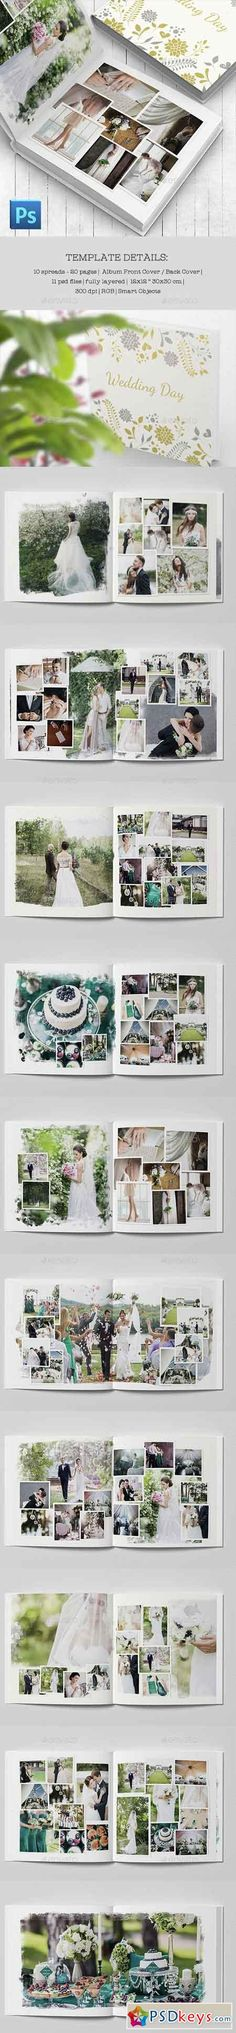 Buy Wedding Photobook Template By TheSeventhDesire On GraphicRiver Just Add Your Favorite Photos And Will Be Ready